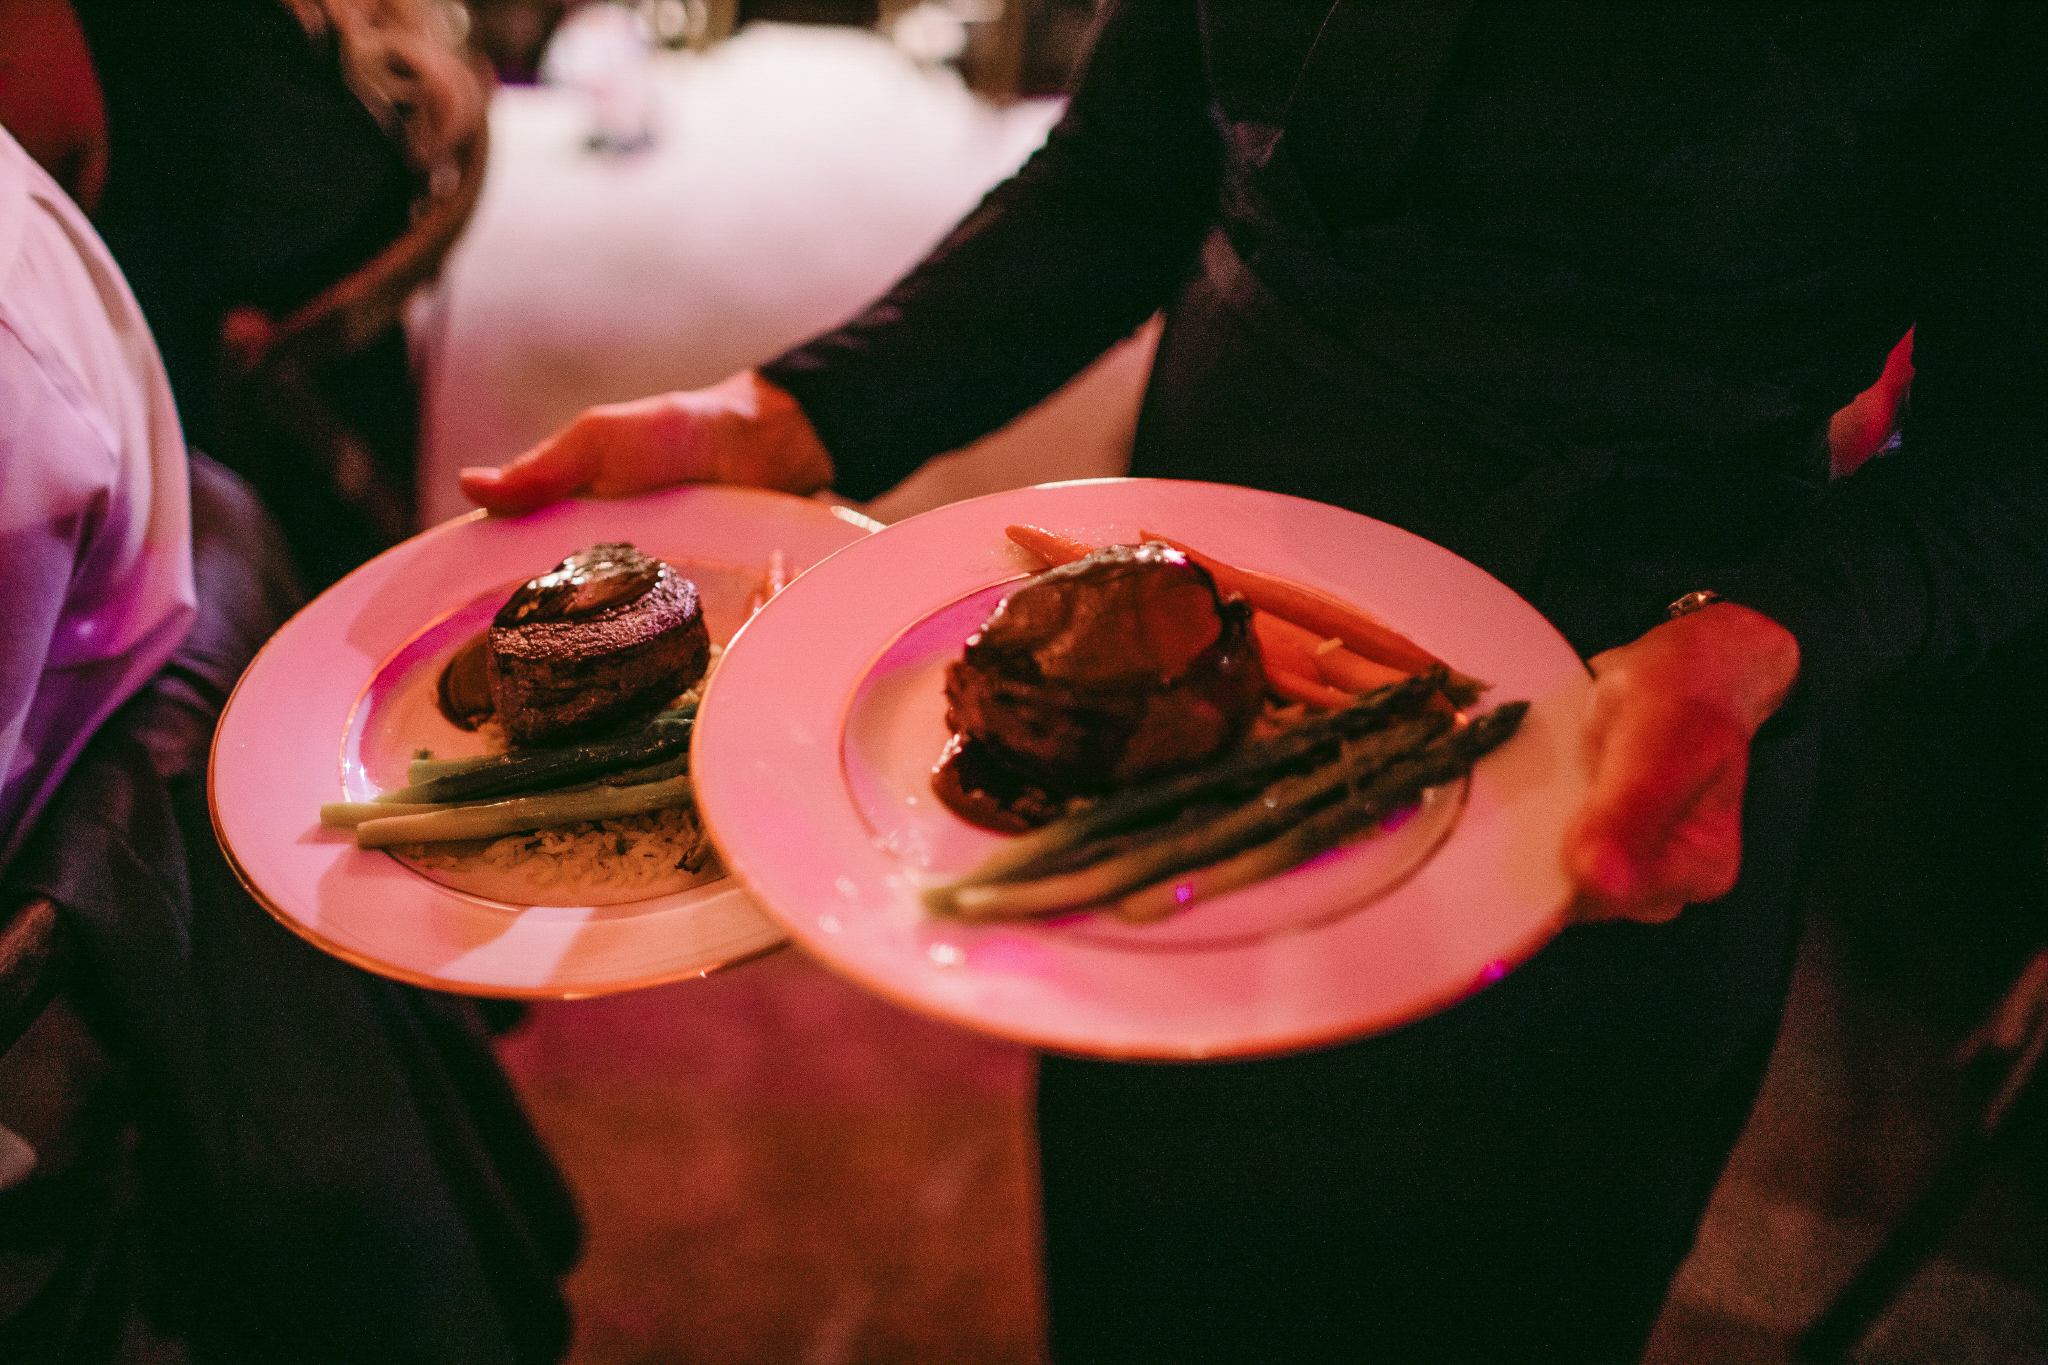 san diego wedding   photographer | 2 plates of food being carried by person in black attire